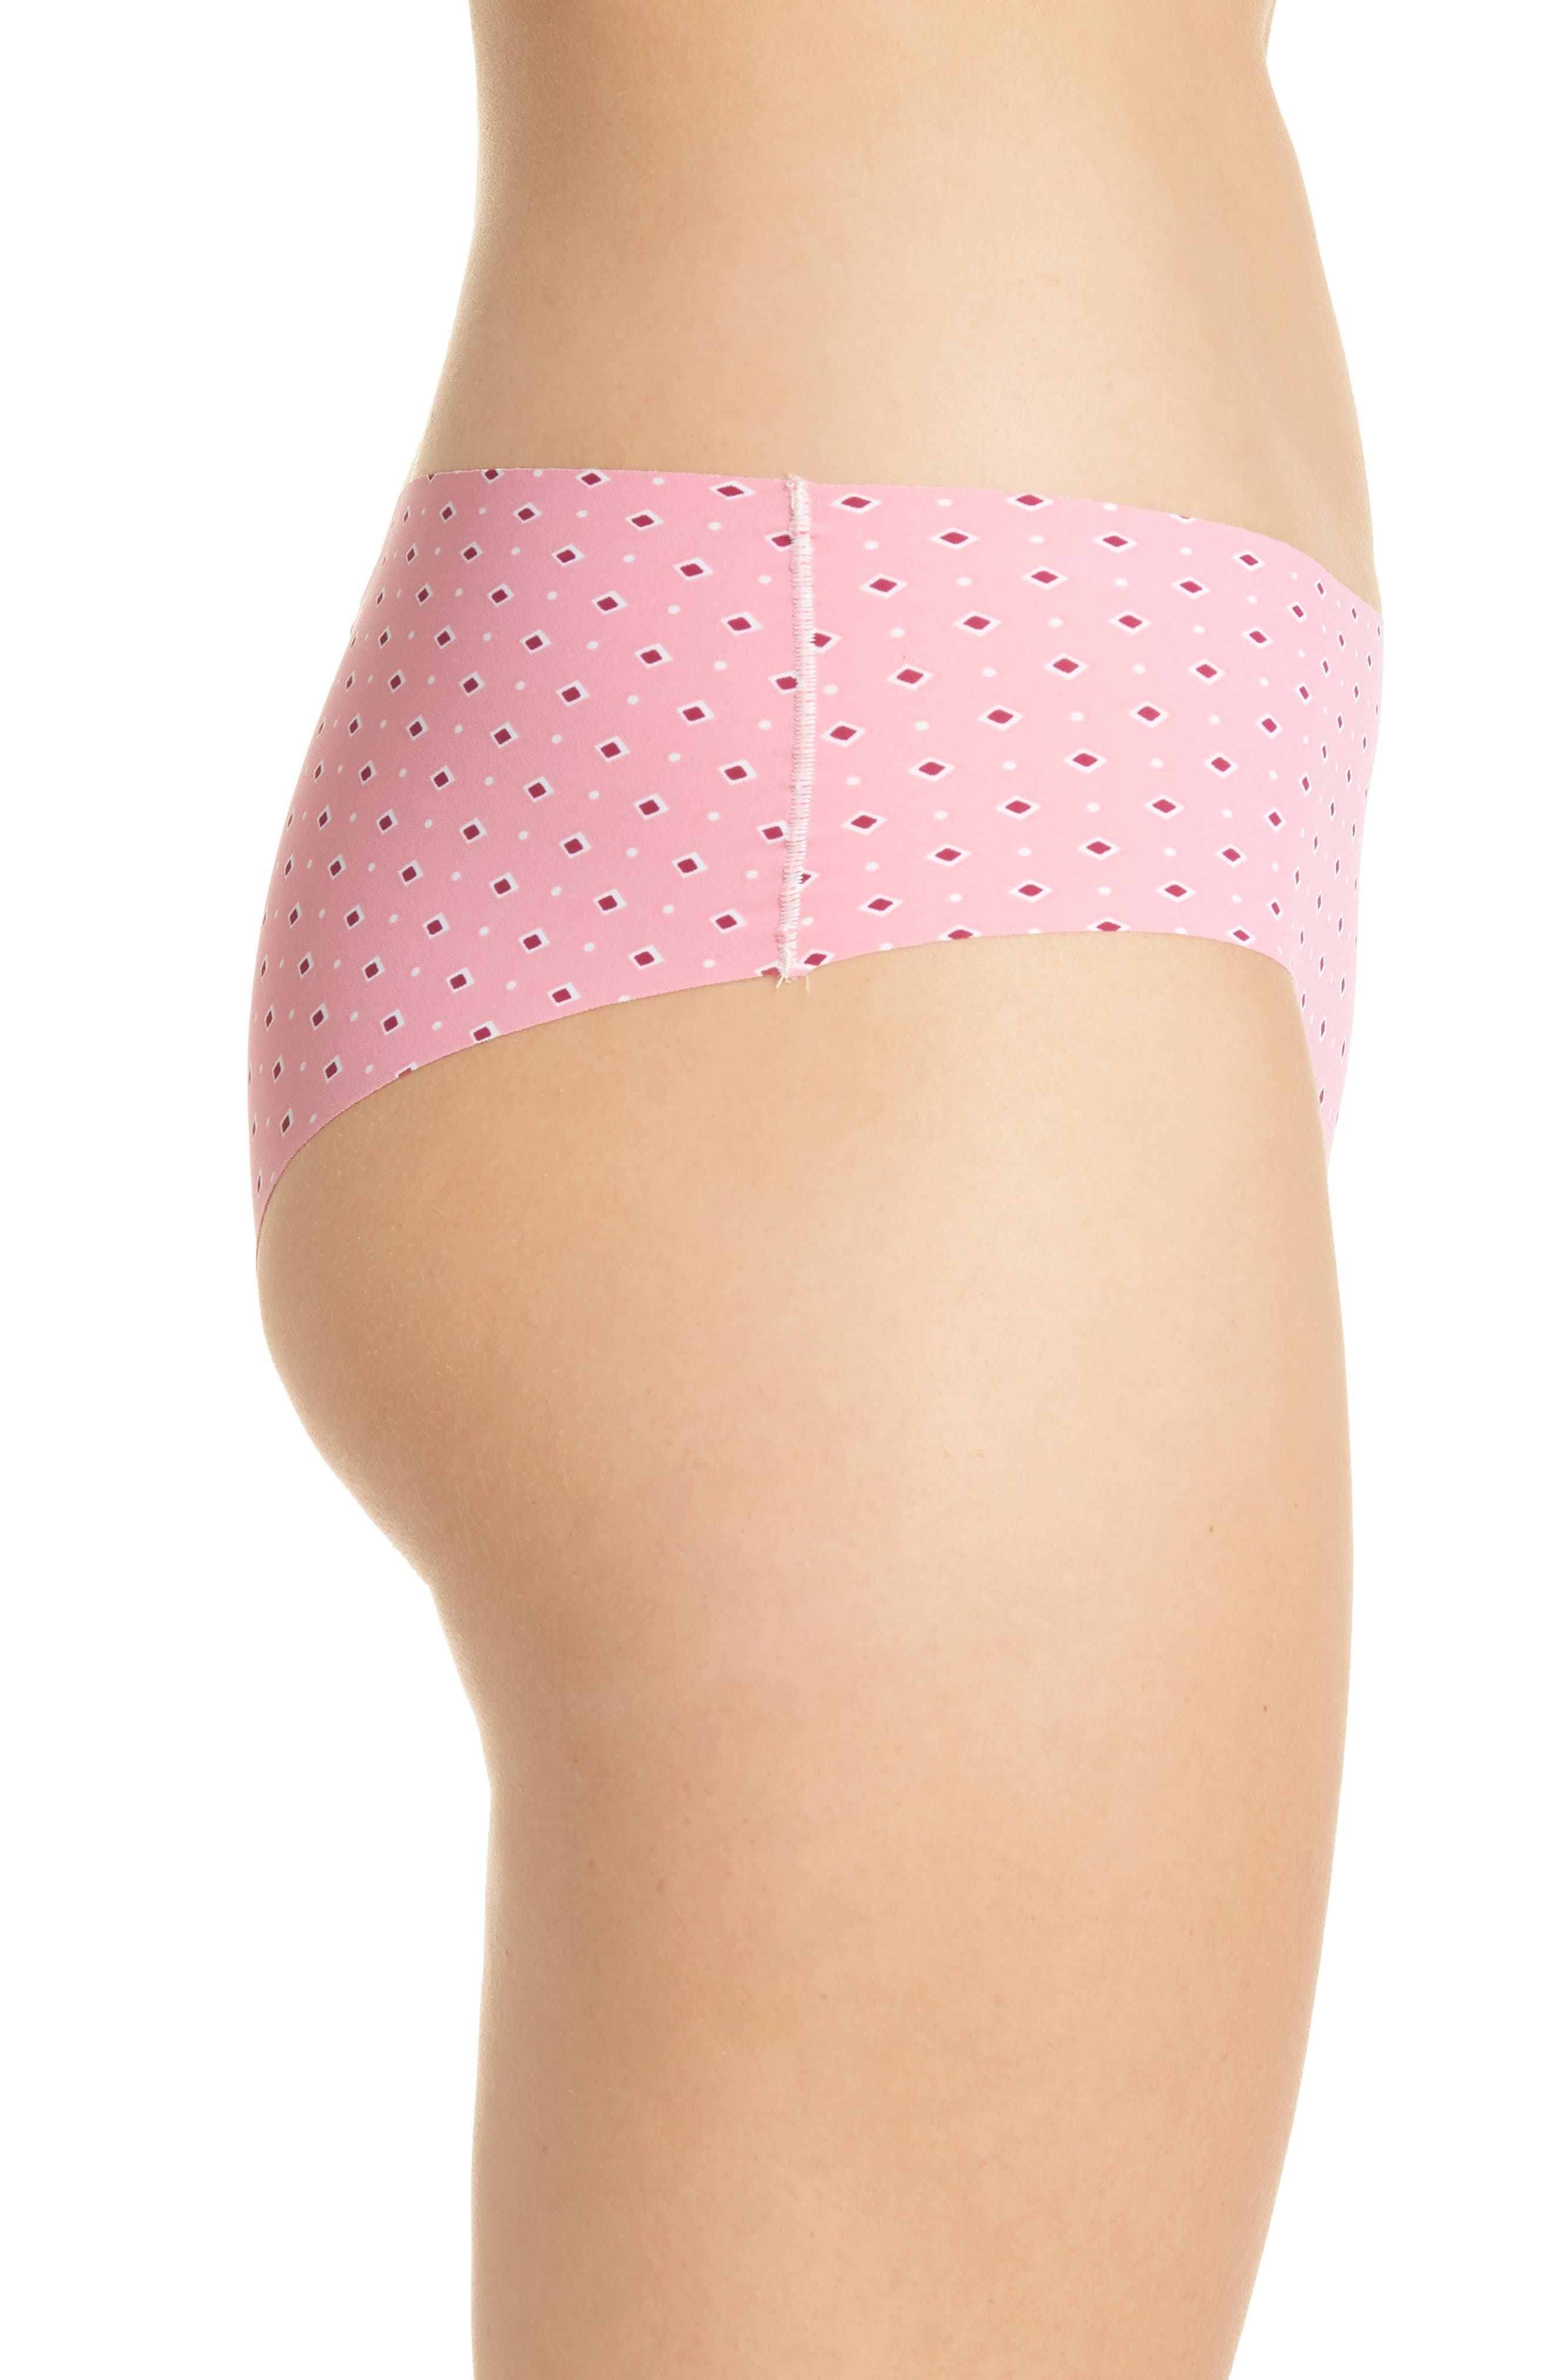 Invisibles Hipster Briefs,                             Alternate thumbnail 3, color,                             SHADOW DIAMOND